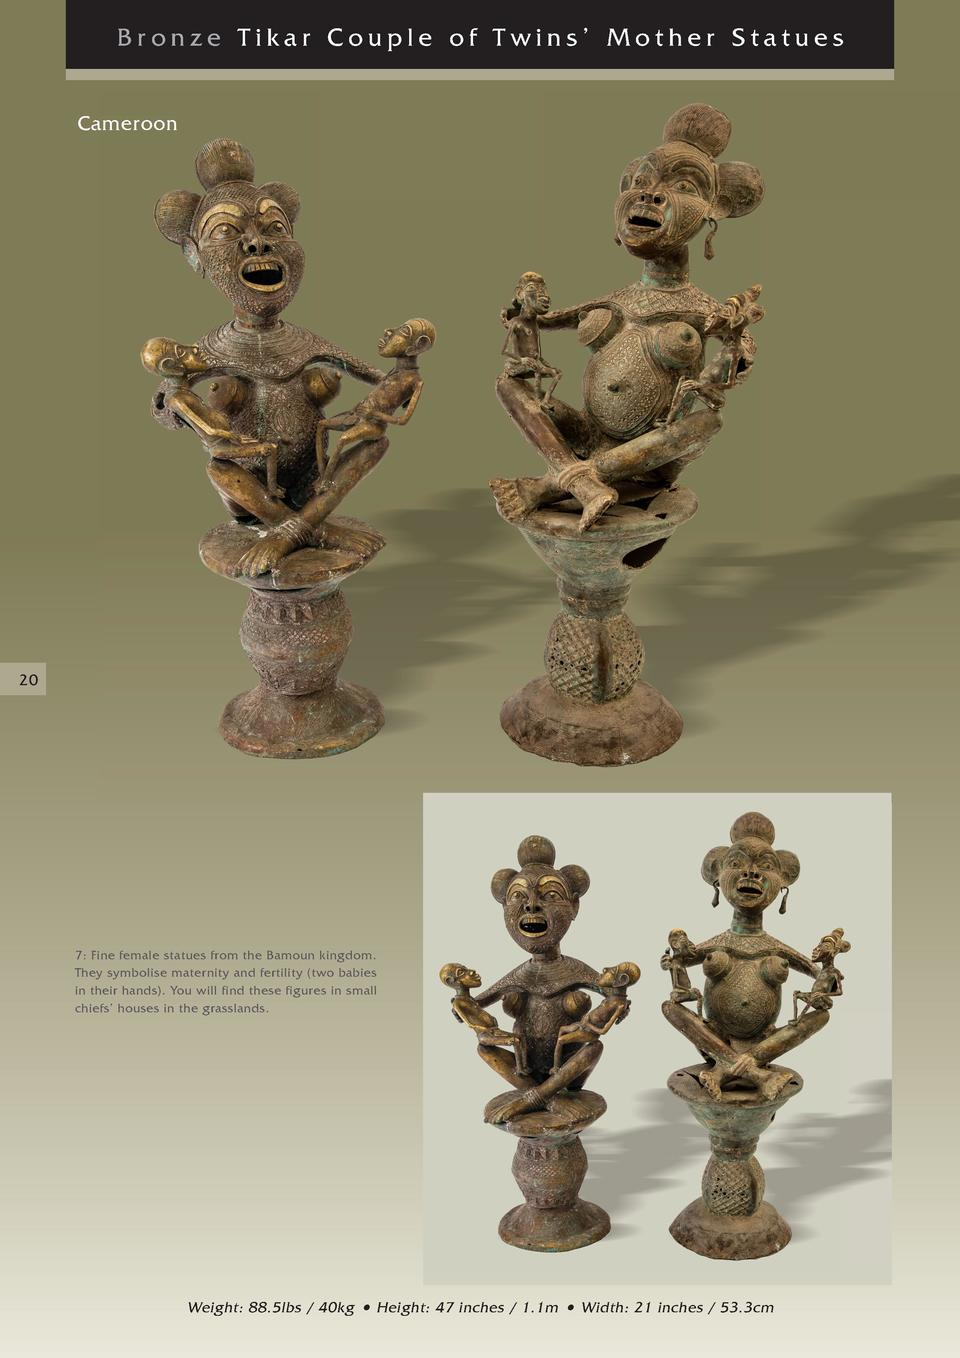 Bronze Tikar Couple of Twins    Mother Statues Cameroon  20  7  Fine female statues from the Bamoun kingdom. They symbolis...